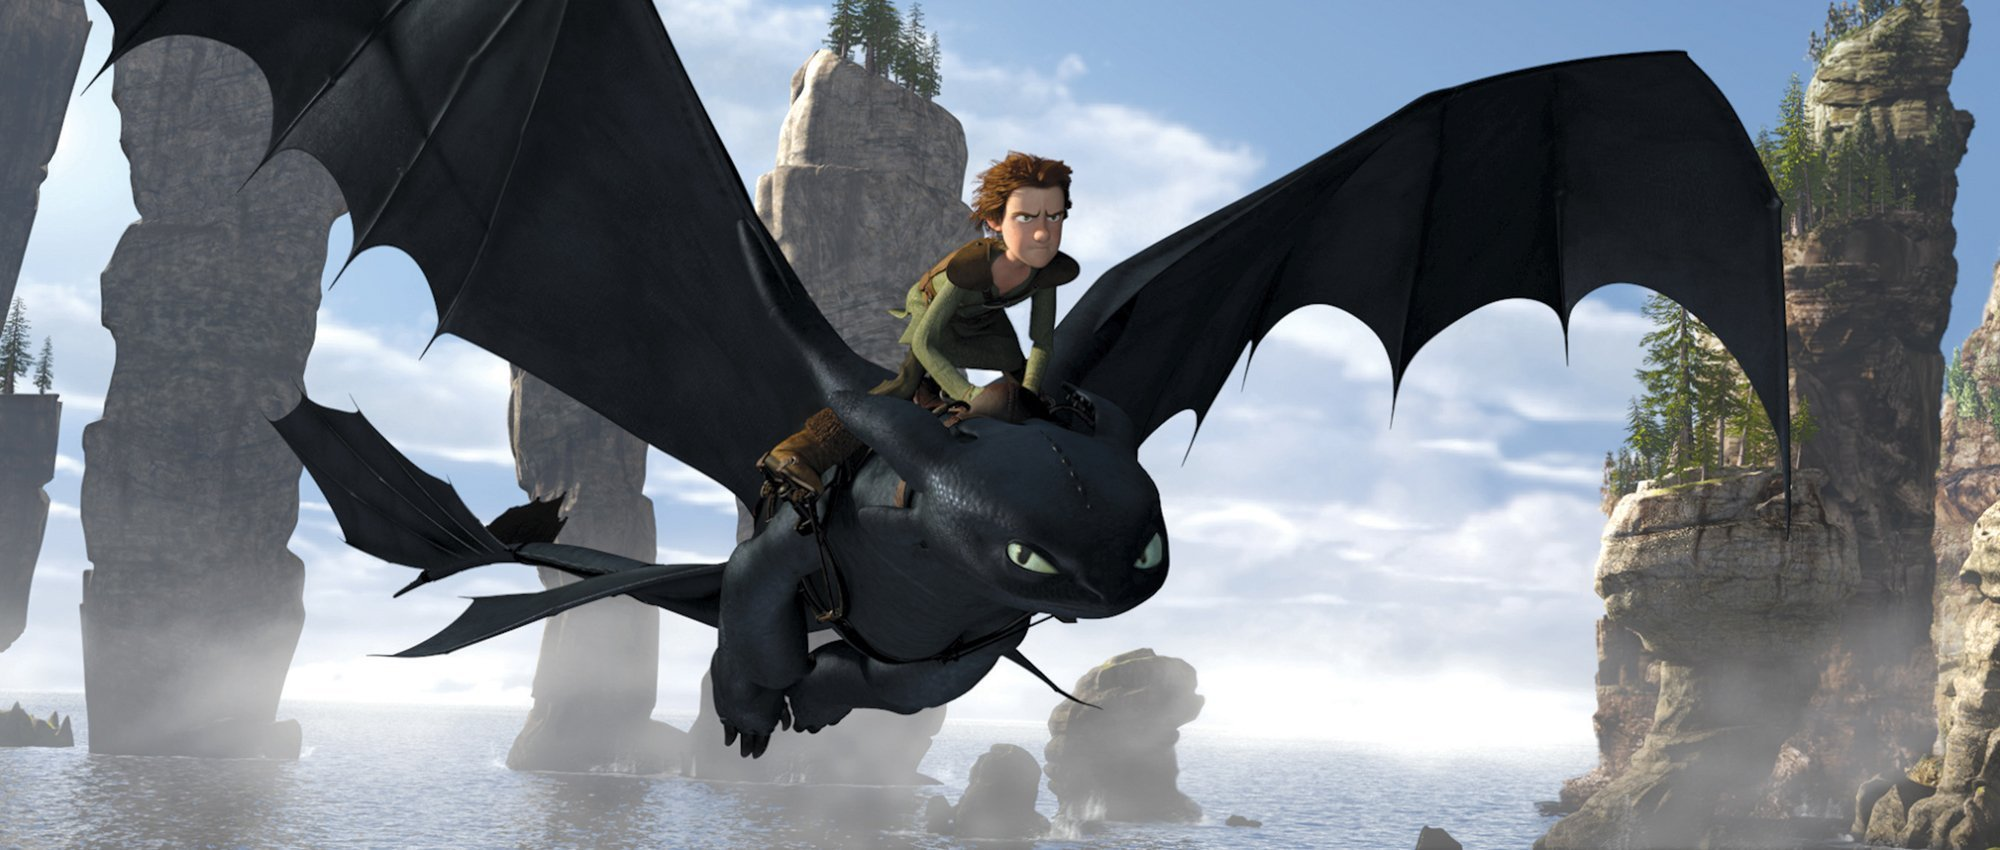 https://i1.wp.com/images2.fanpop.com/image/photos/9600000/Hiccup-Toothless-how-to-train-your-dragon-9626230-2000-850.jpg